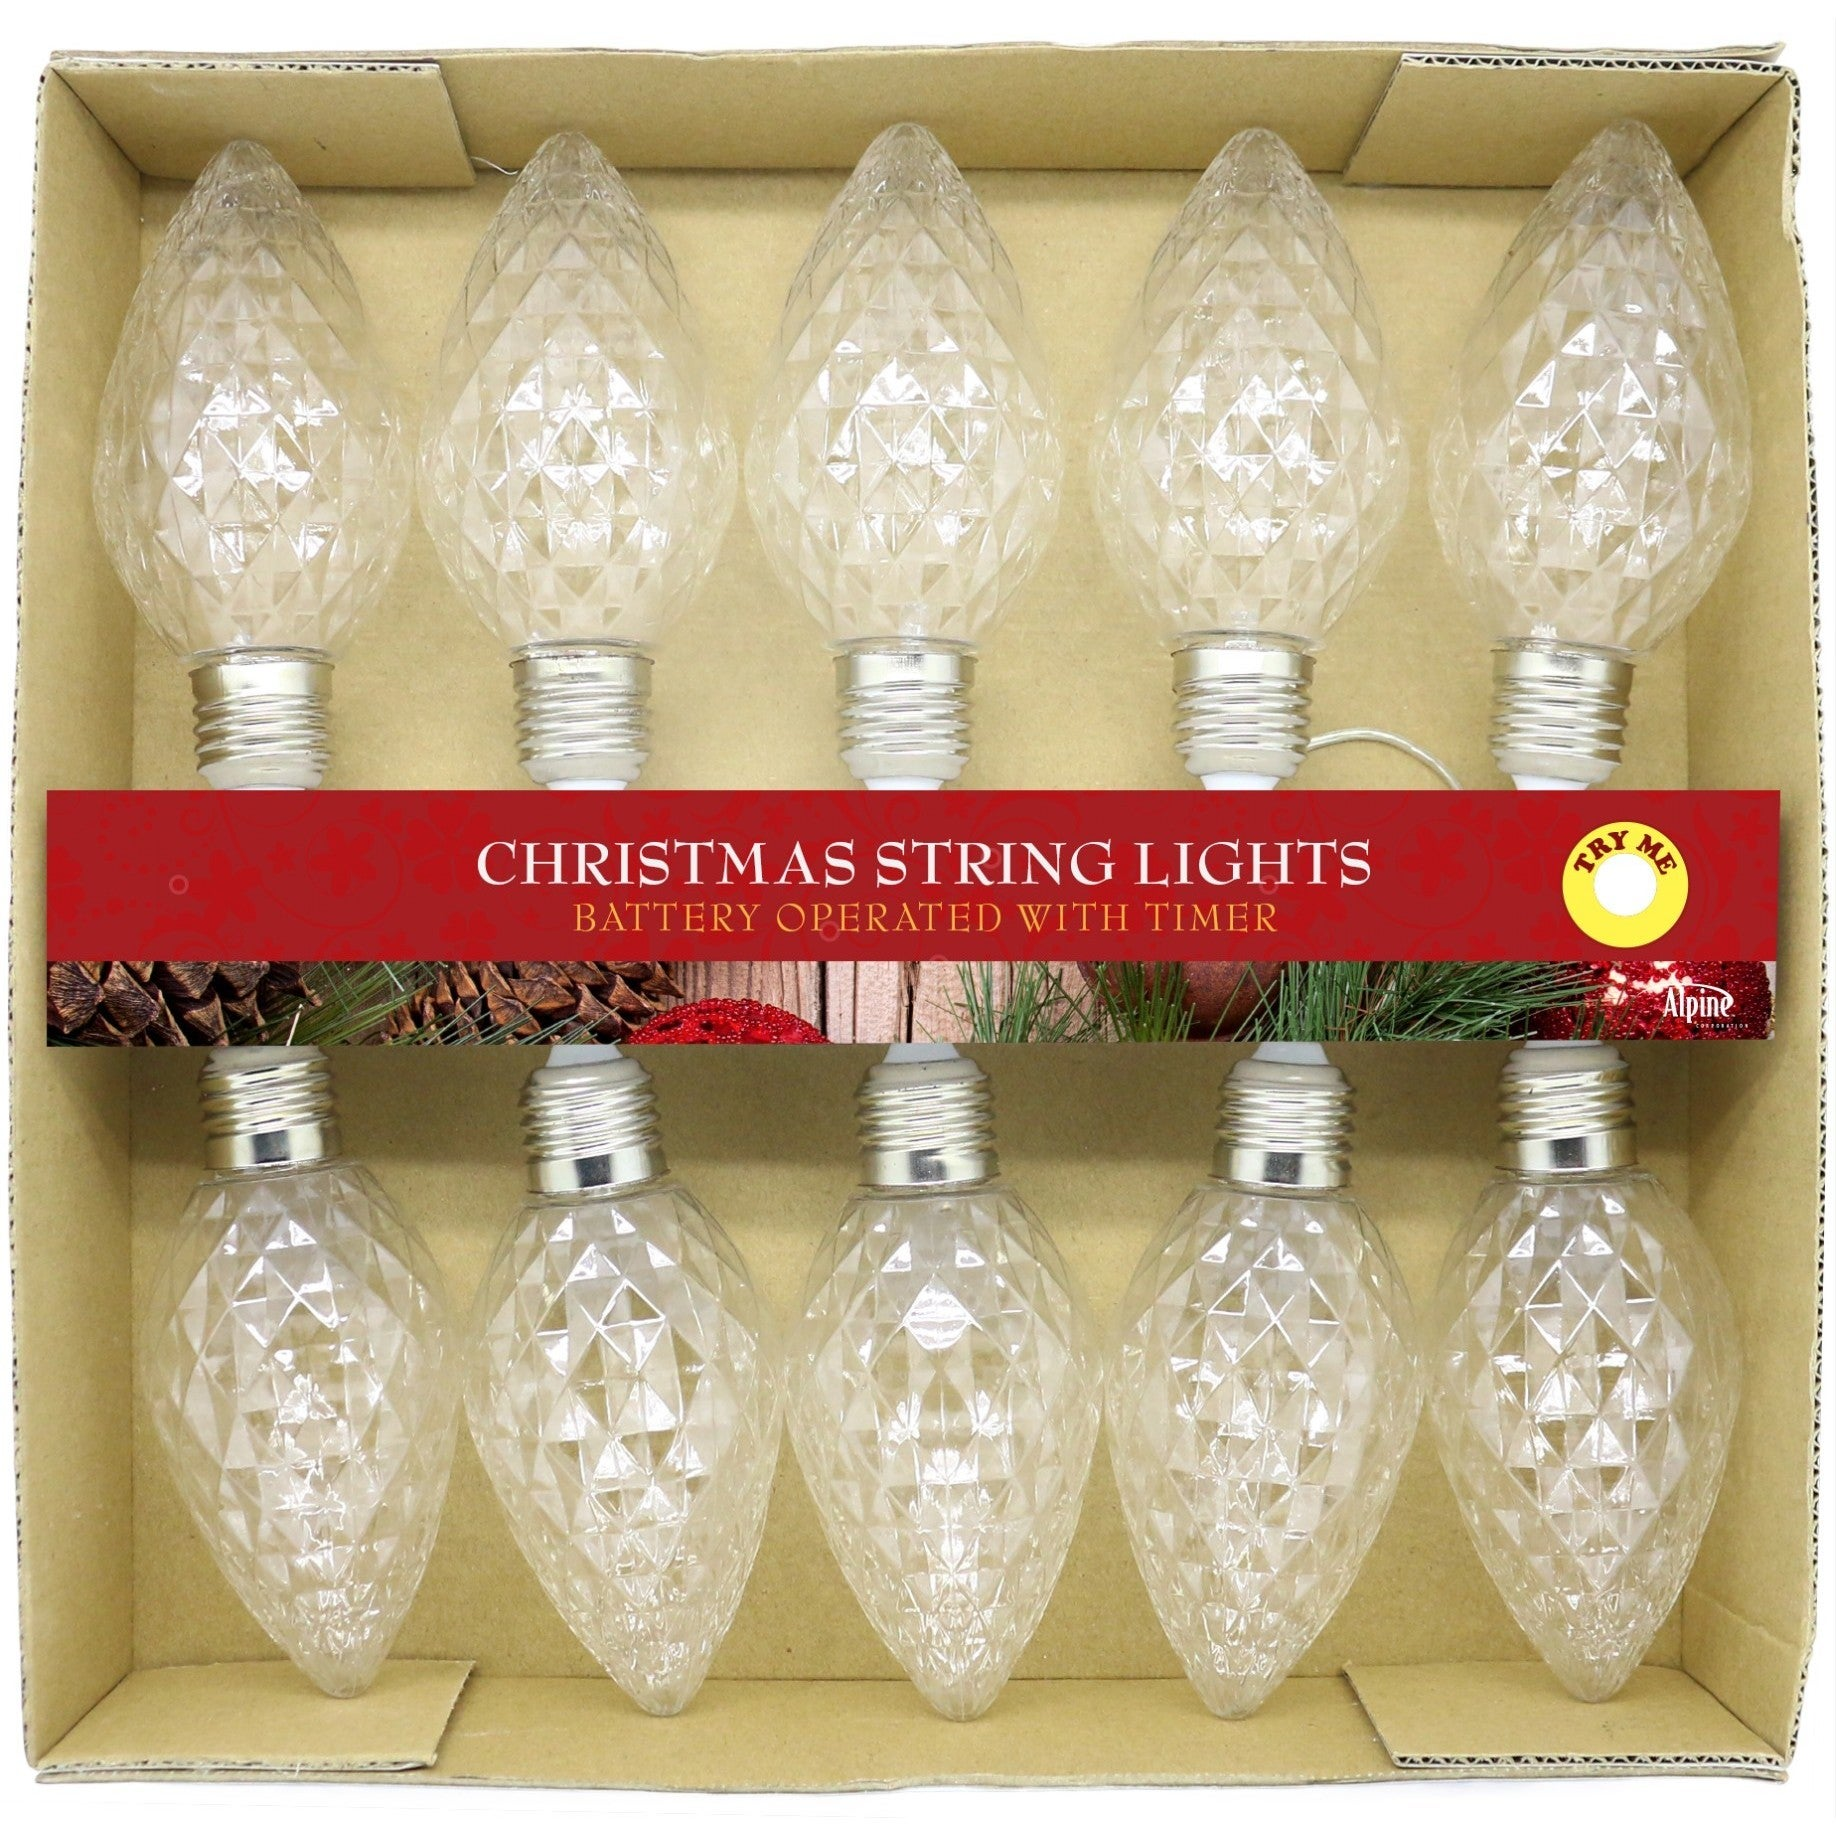 Alpine Clear Faceted Decorative LED 10-bulb Light String ...